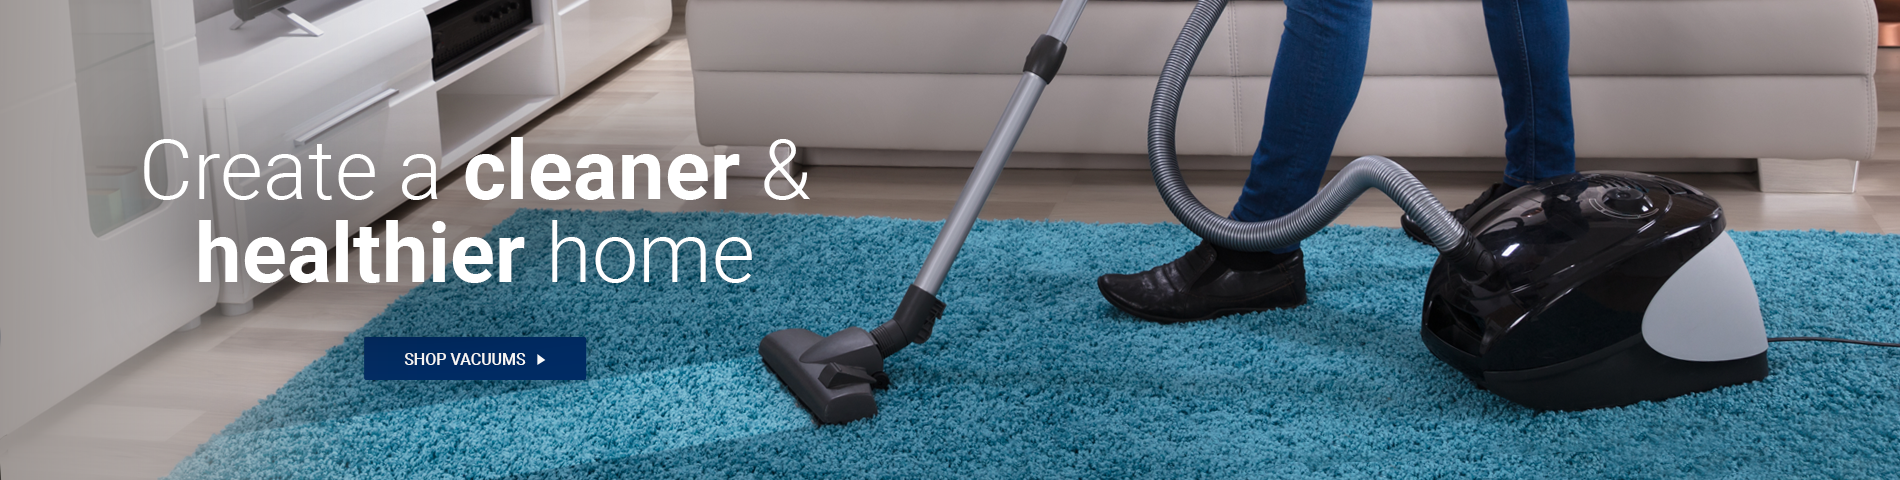 Create a Cleaner & Healthier Home - Shop Vacuums